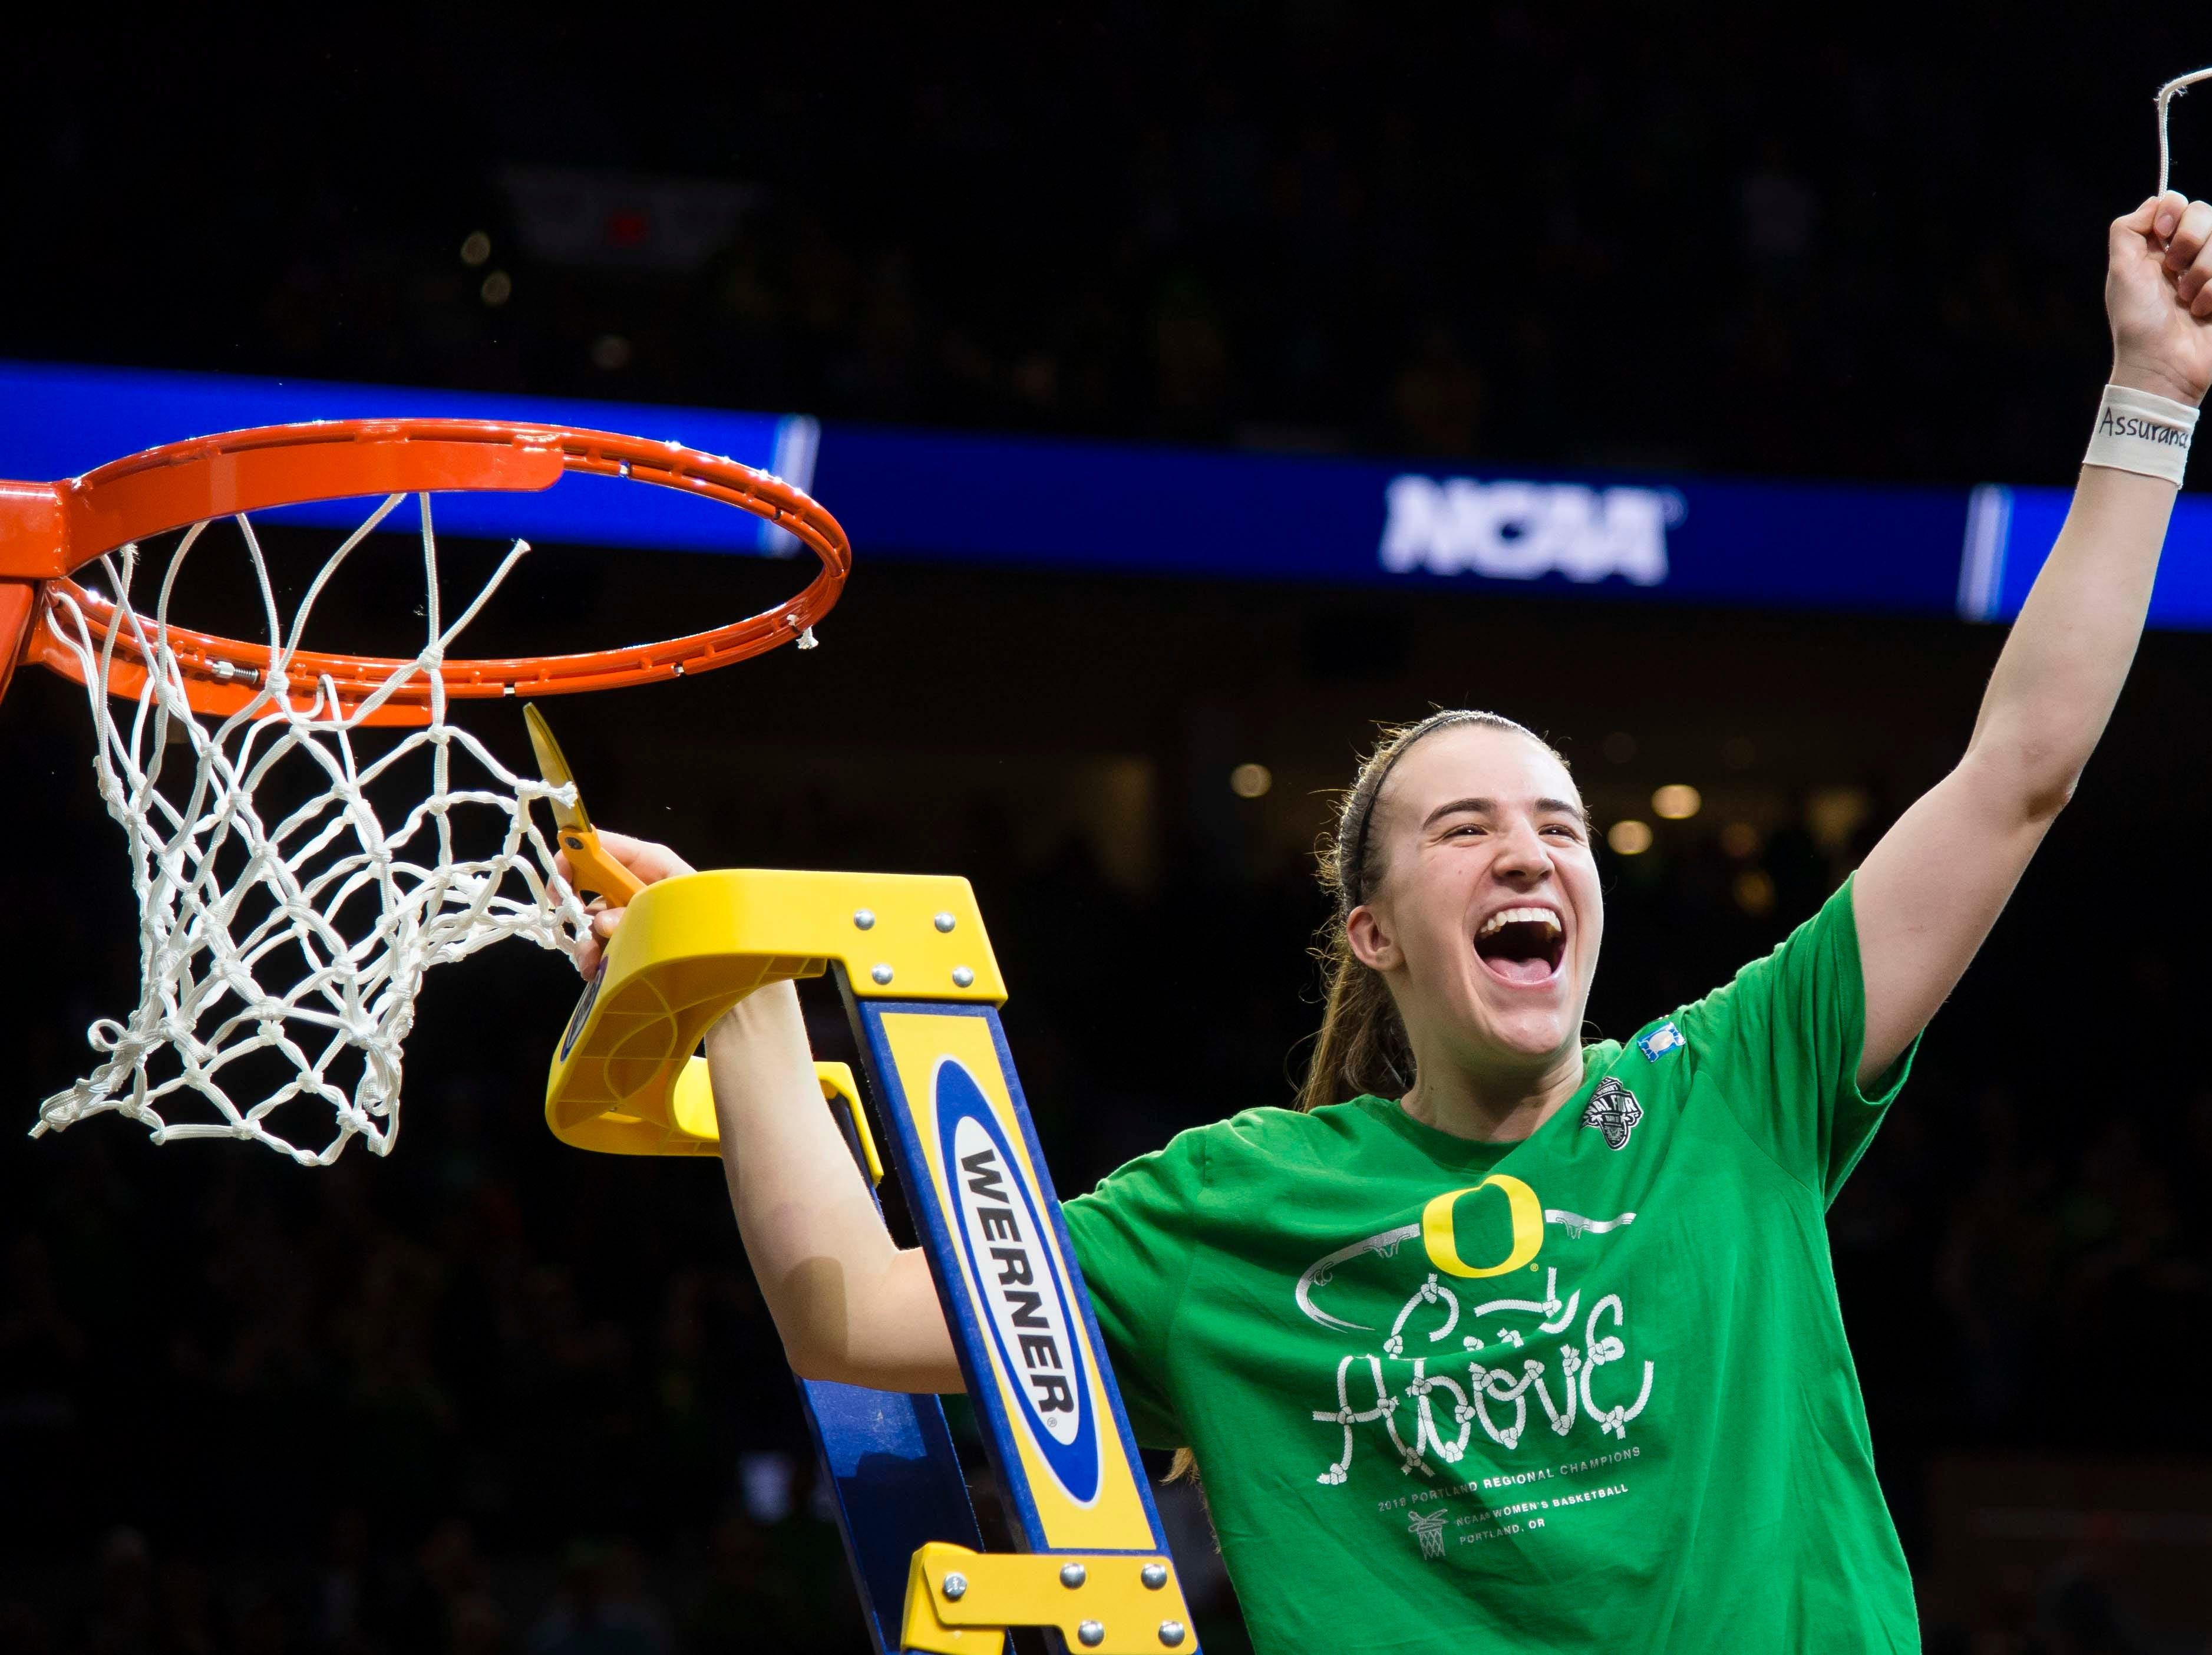 Oregon Ducks guard Sabrina Ionescu (20) cuts the net after a game against the Mississippi State Bulldogs in the championship game of the Portland regional in the women's 2019 NCAA Tournament at Moda Center. The Oregon Ducks beat the Mississippi State Bulldogs 88-84.